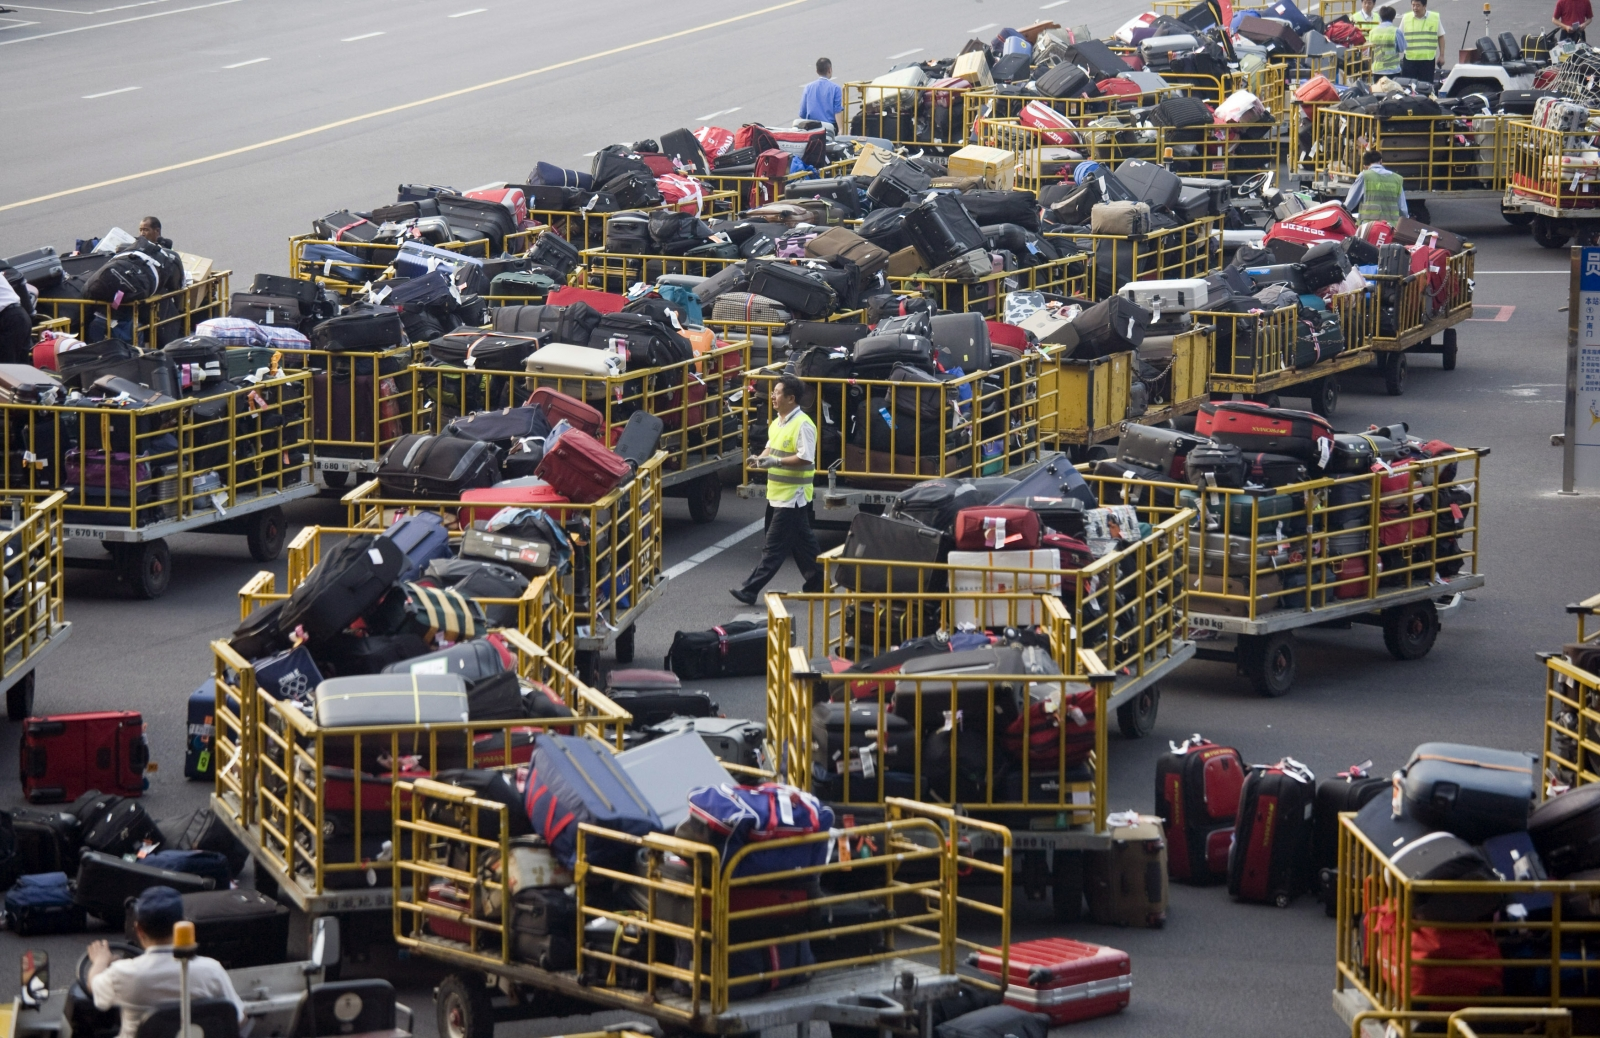 Theiving baggage handlers exposed at Miami airport